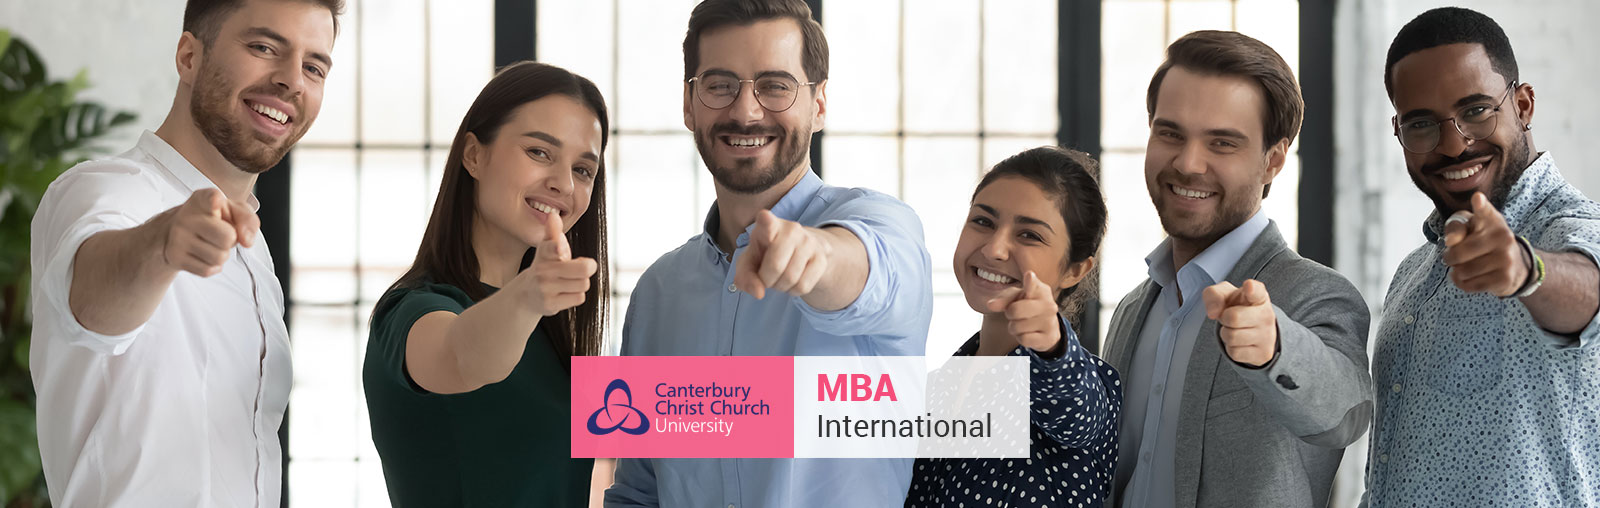 MBA International | CCCU